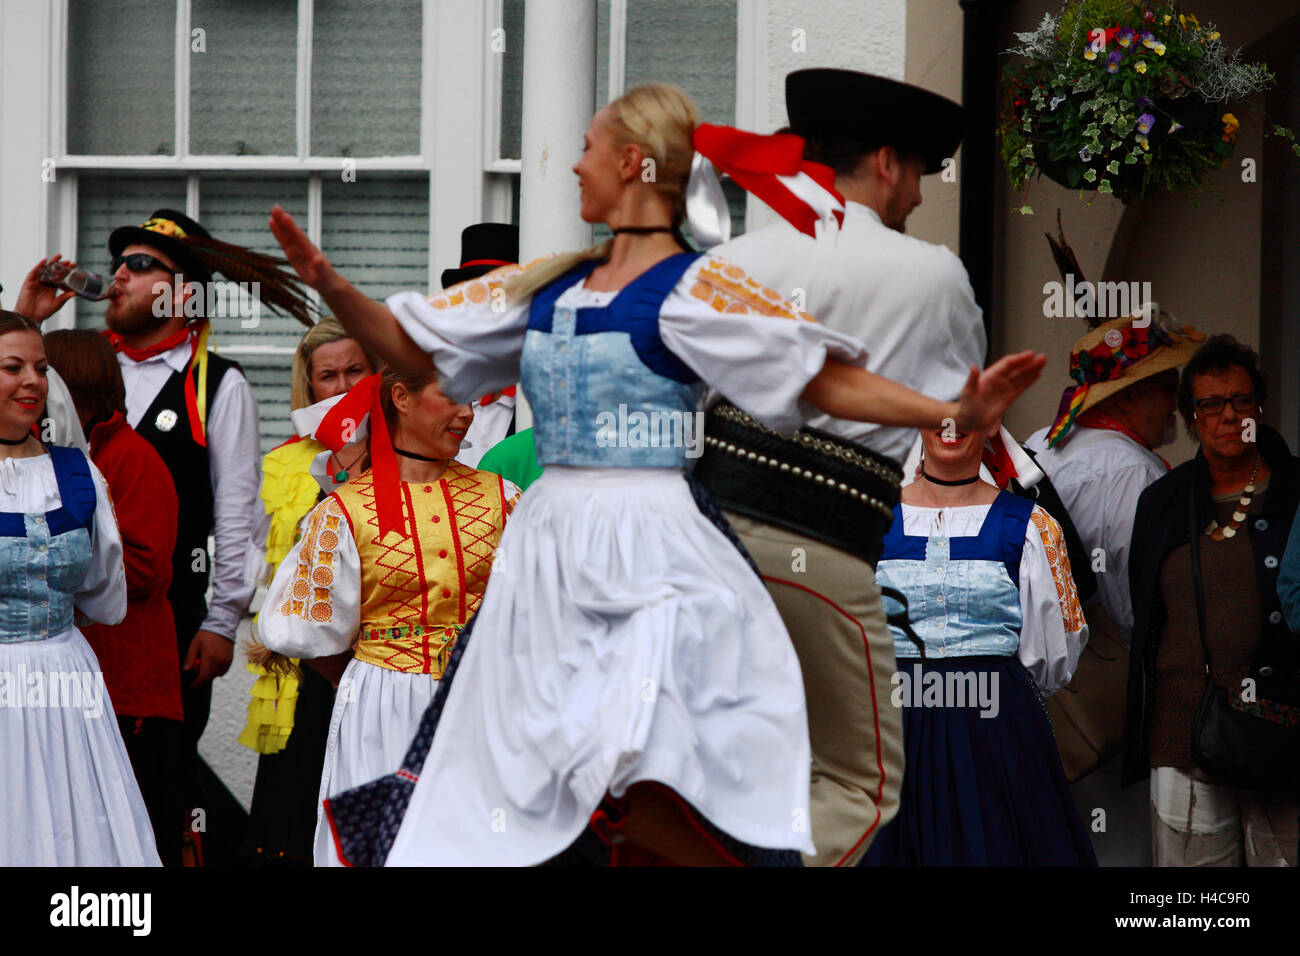 Folk dancers dancing during an annual  folk festival in Tenterden, Kent, England Stock Photo